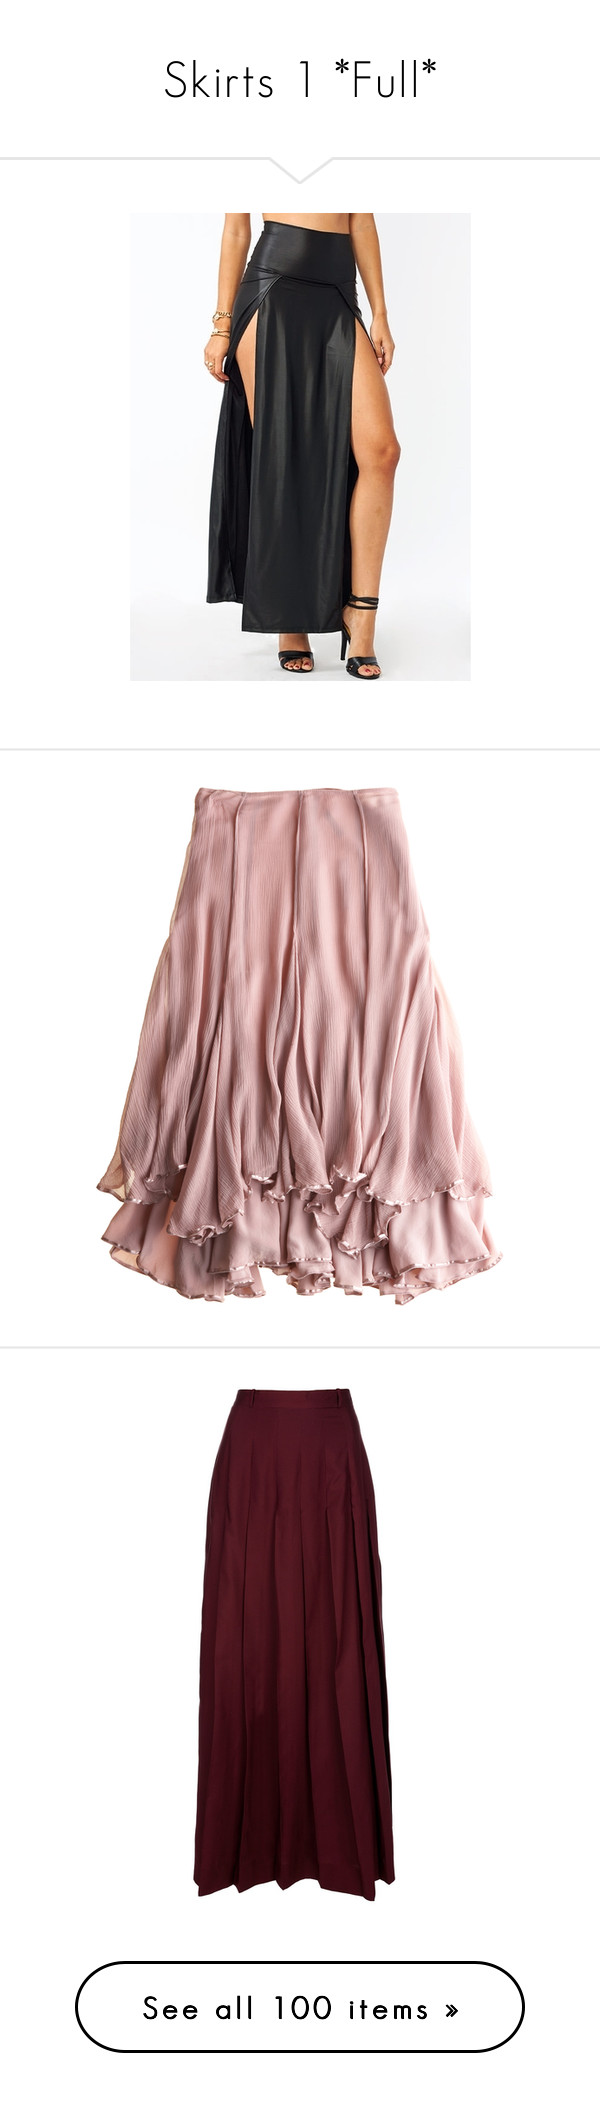 """Skirts 1 *Full*"" by crystalgriffin-ffn ❤ liked on Polyvore featuring skirts, bottoms, pink, saias, frilly skirt, ruffle skirt, pink skirt, pink ruffle skirt, long layered skirt and maxi skirts"